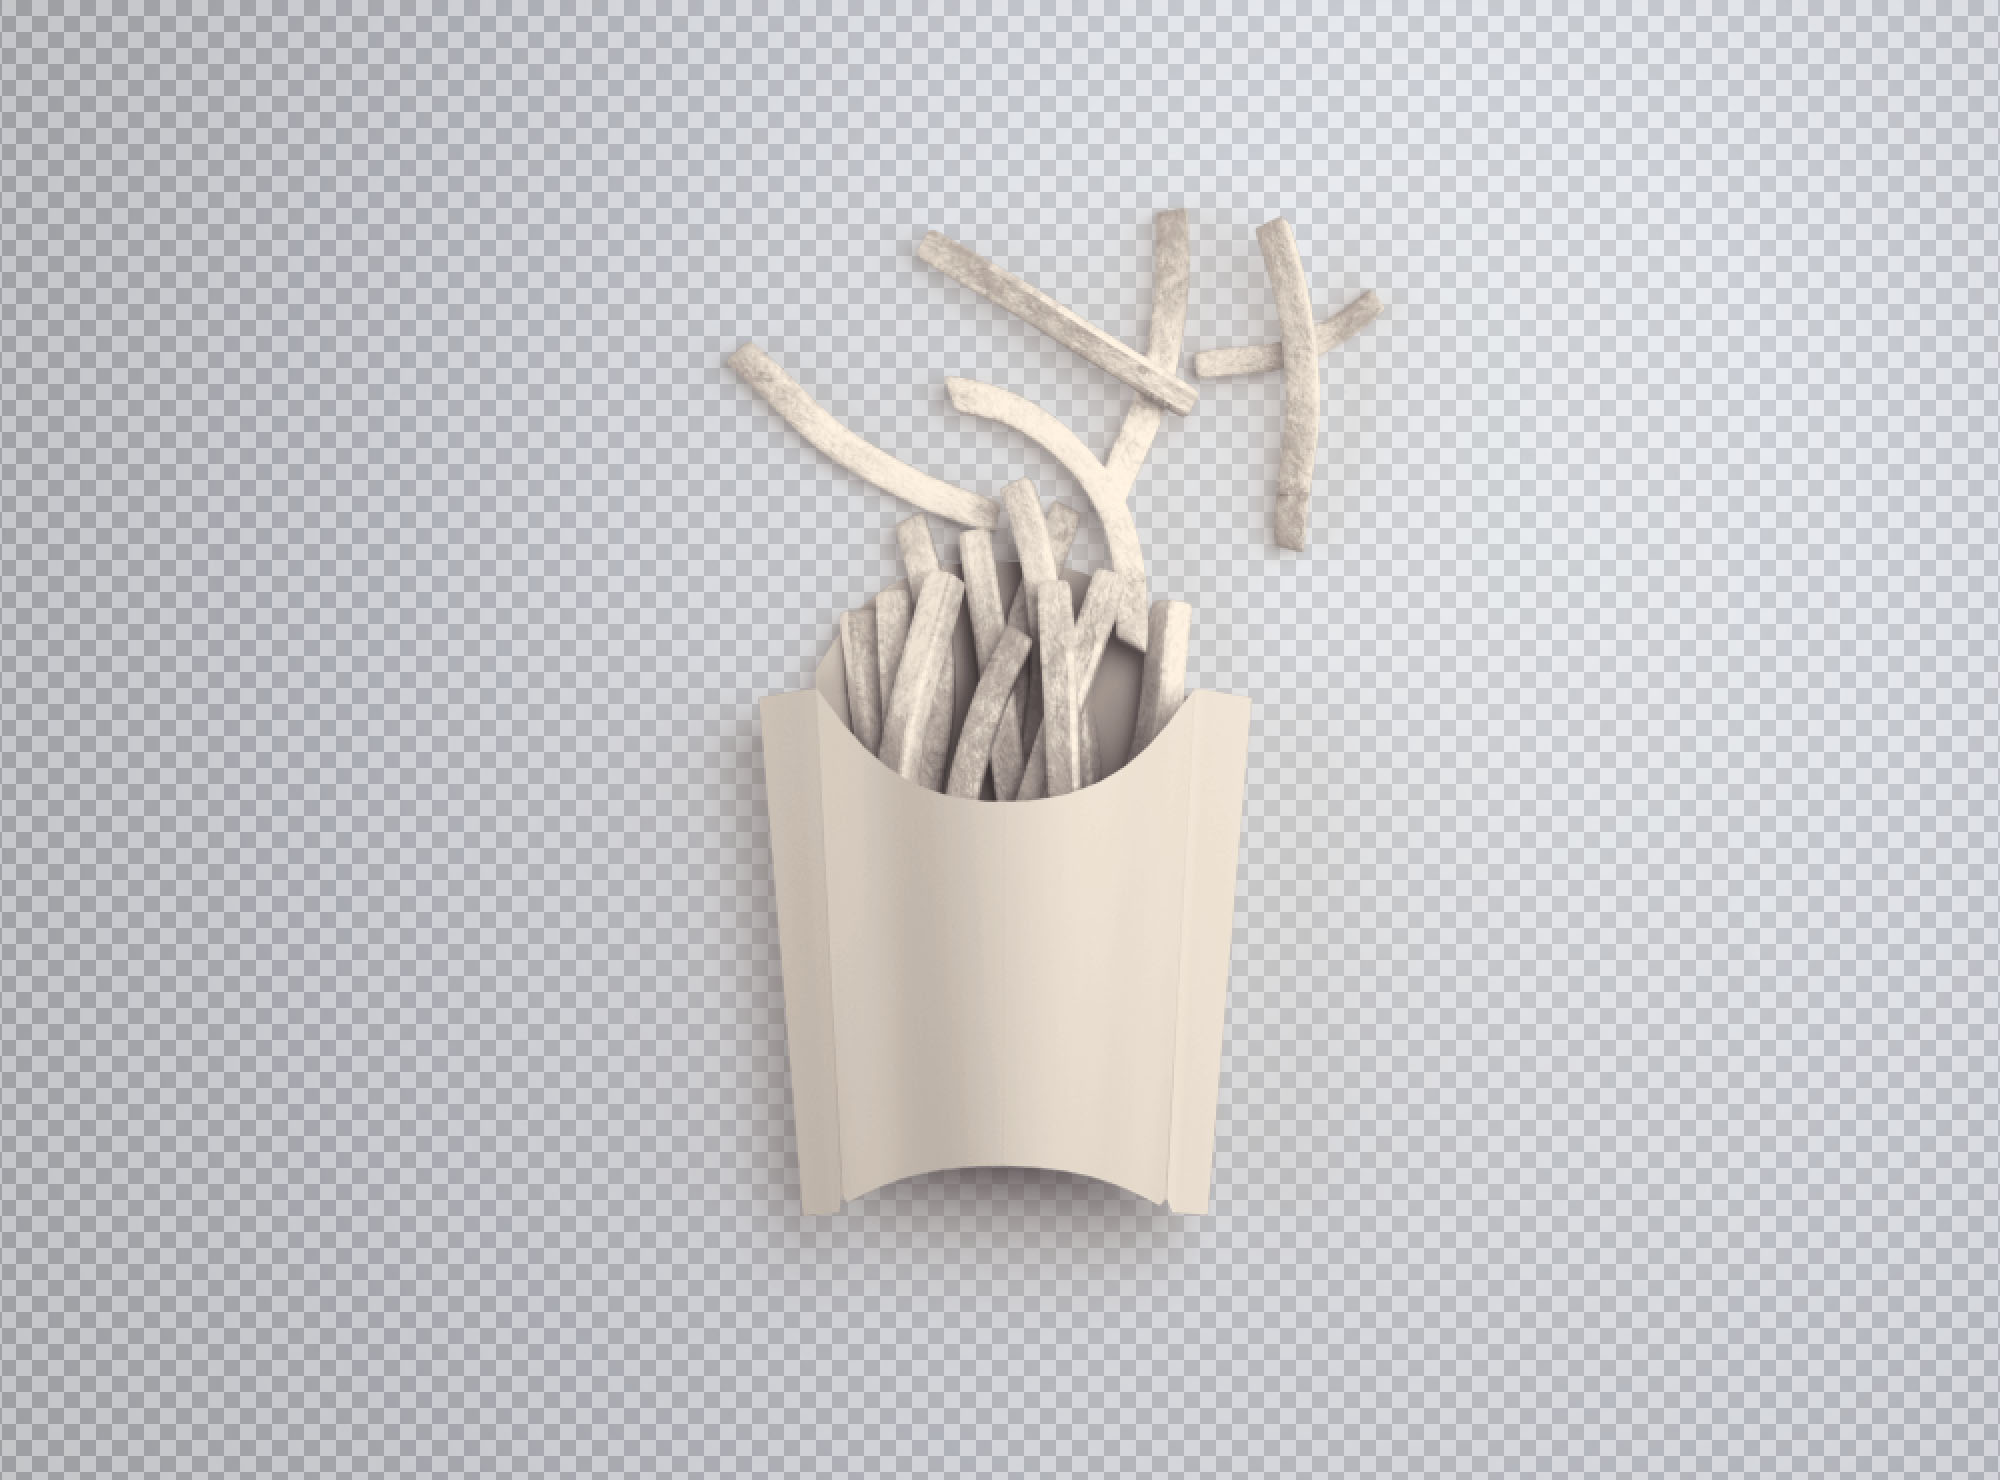 Fries Box Mockup - Blank